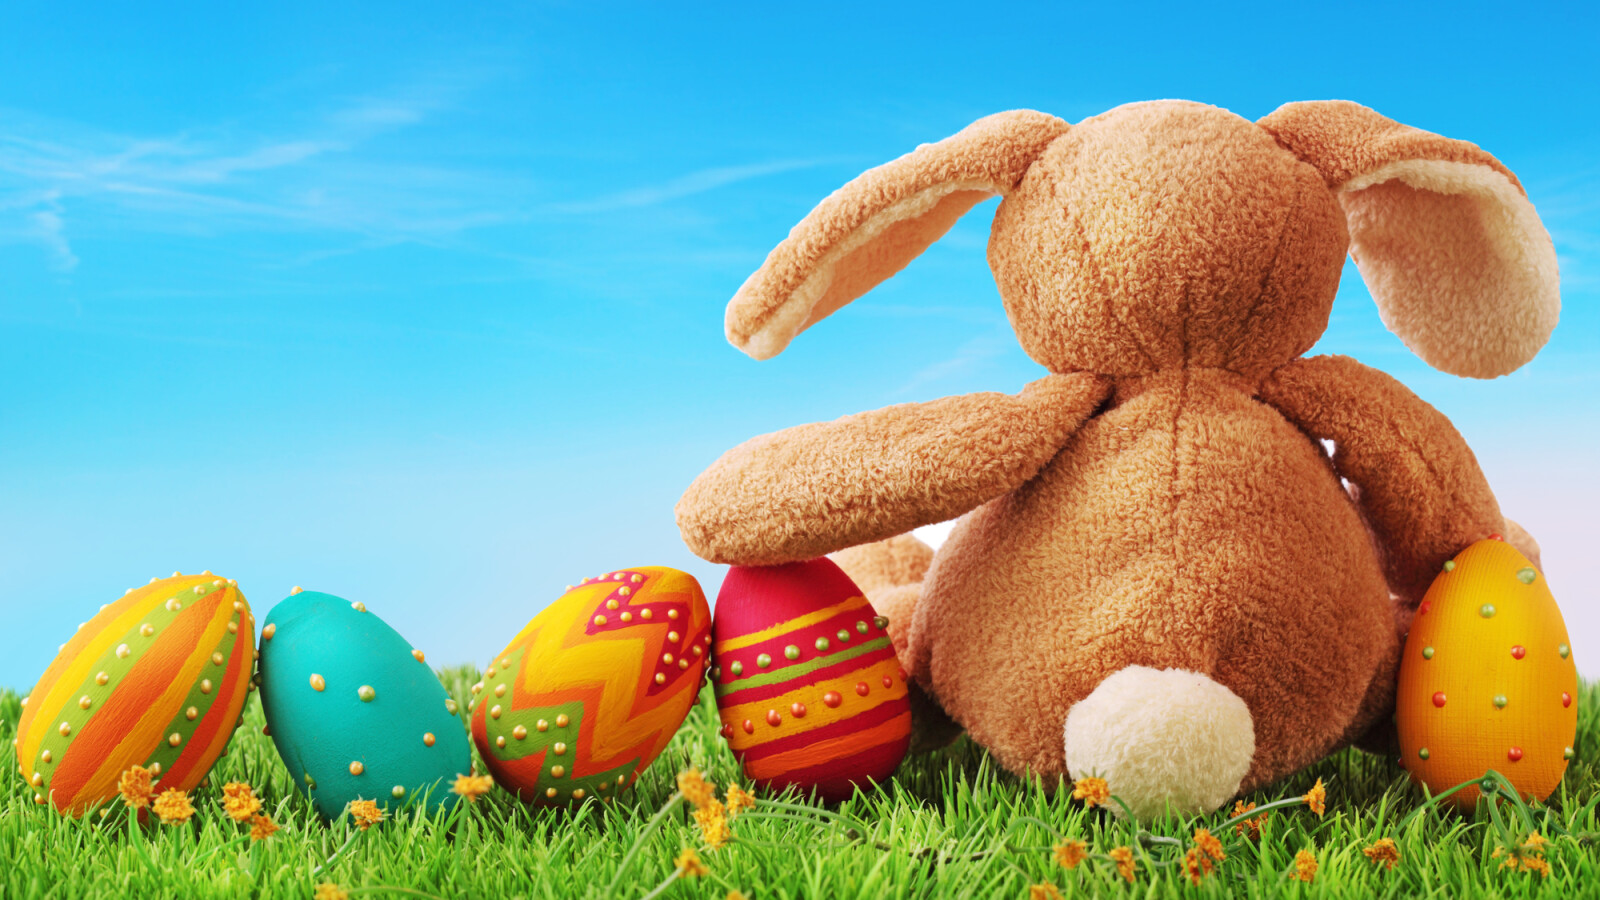 Easter Greetings Sayings And Gifs For Facebook Whatsapp And Co